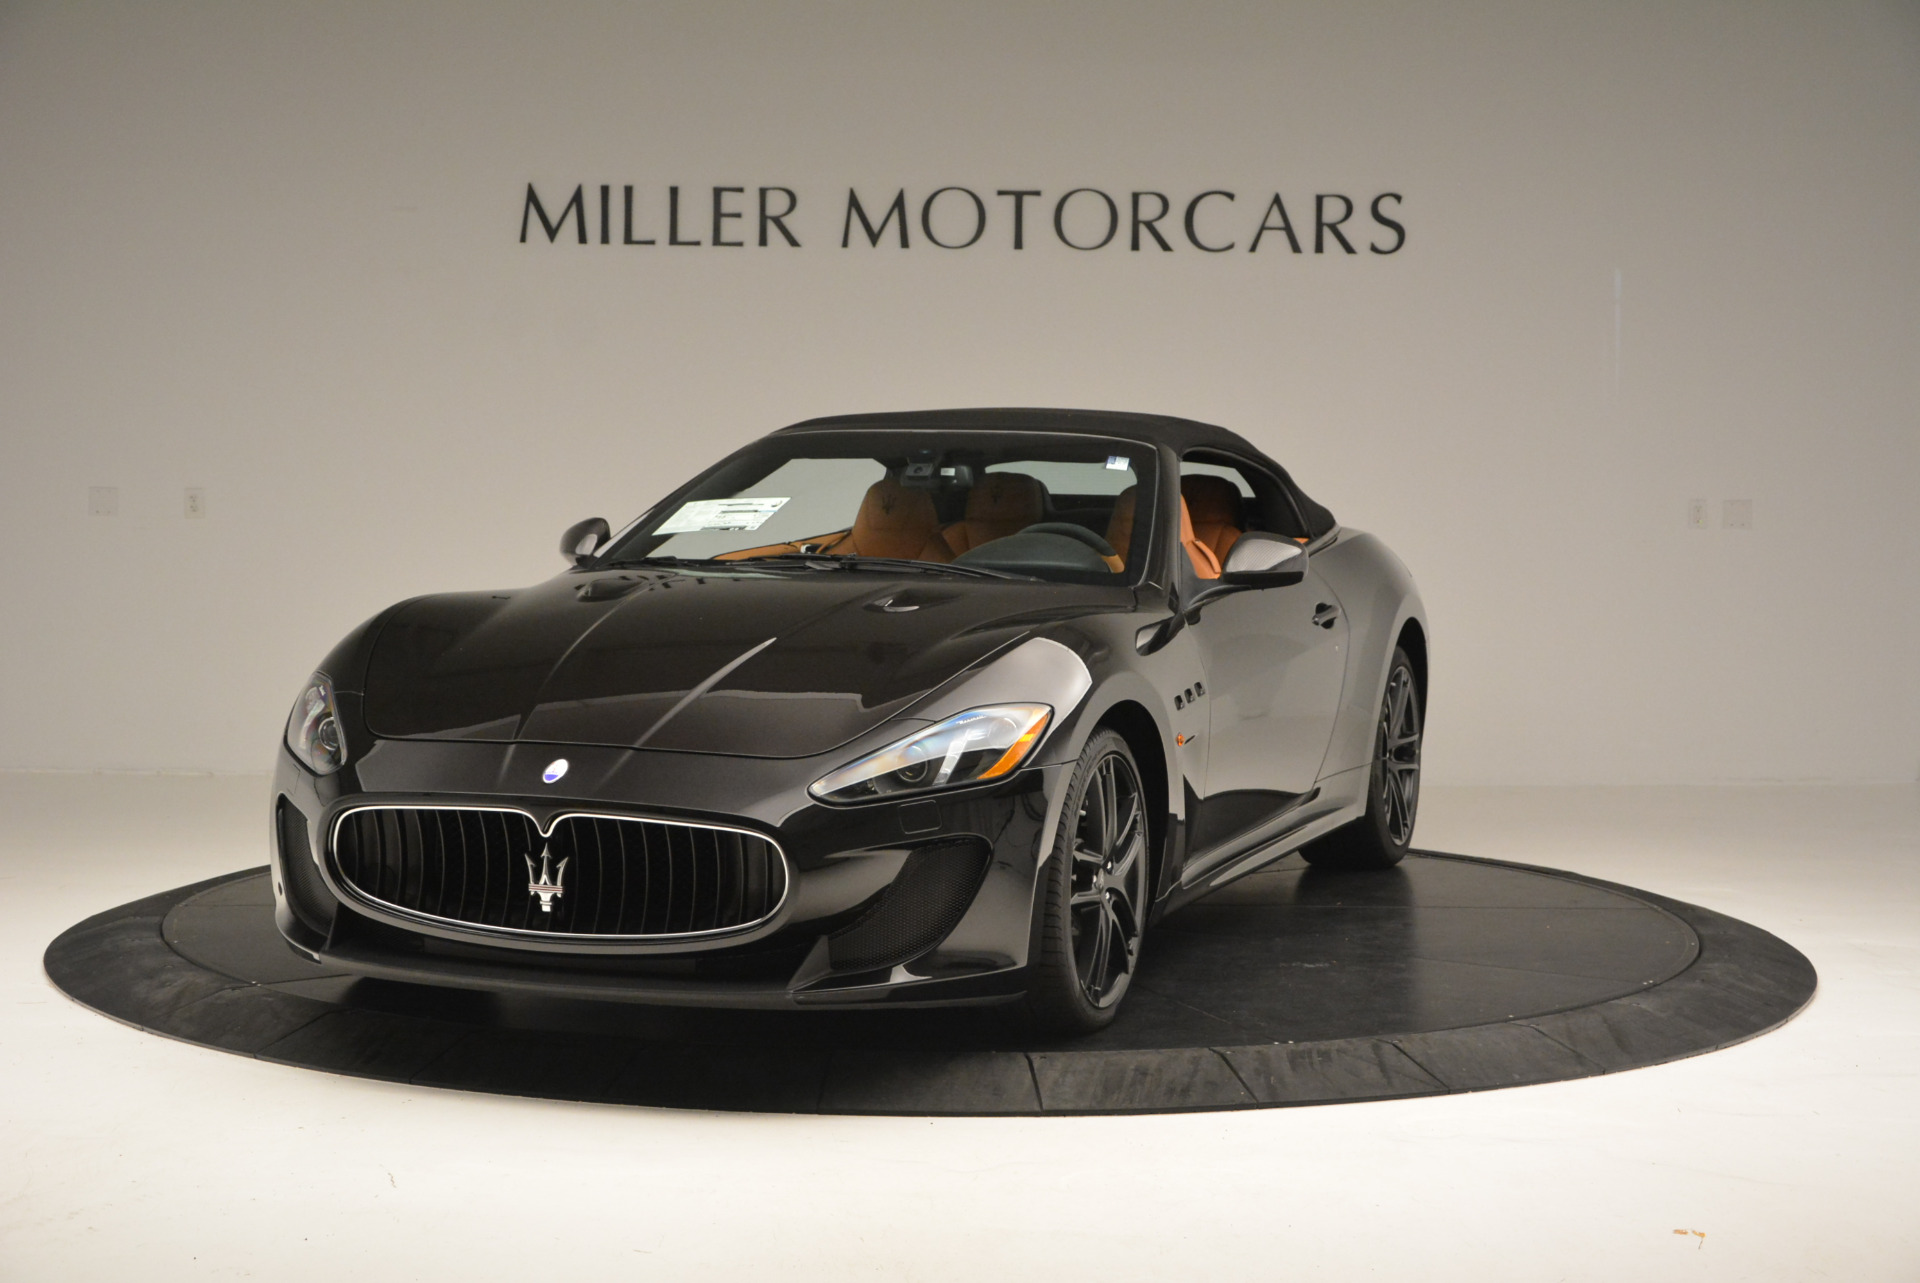 New 2017 Maserati GranTurismo MC CONVERTIBLE For Sale In Greenwich, CT 596_p18